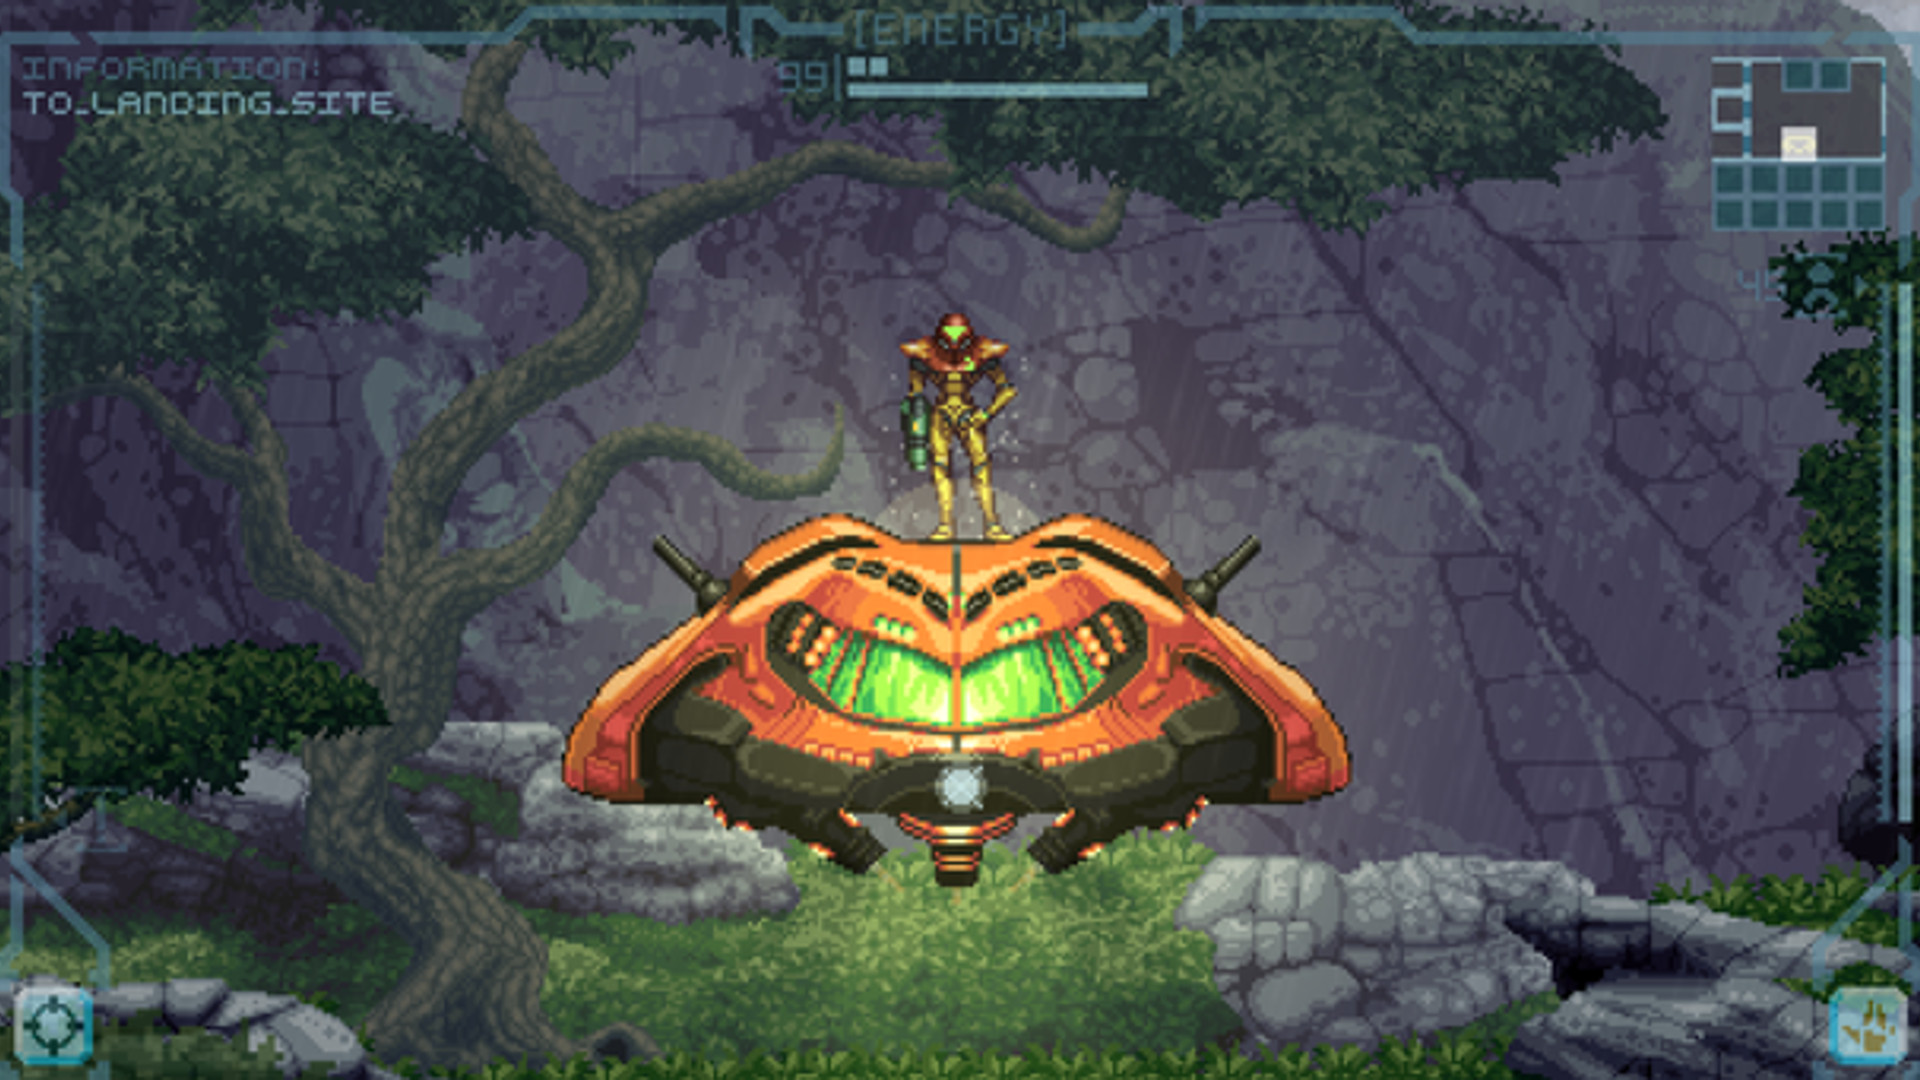 Metroid Prime is being remade as a 2D metroidvania